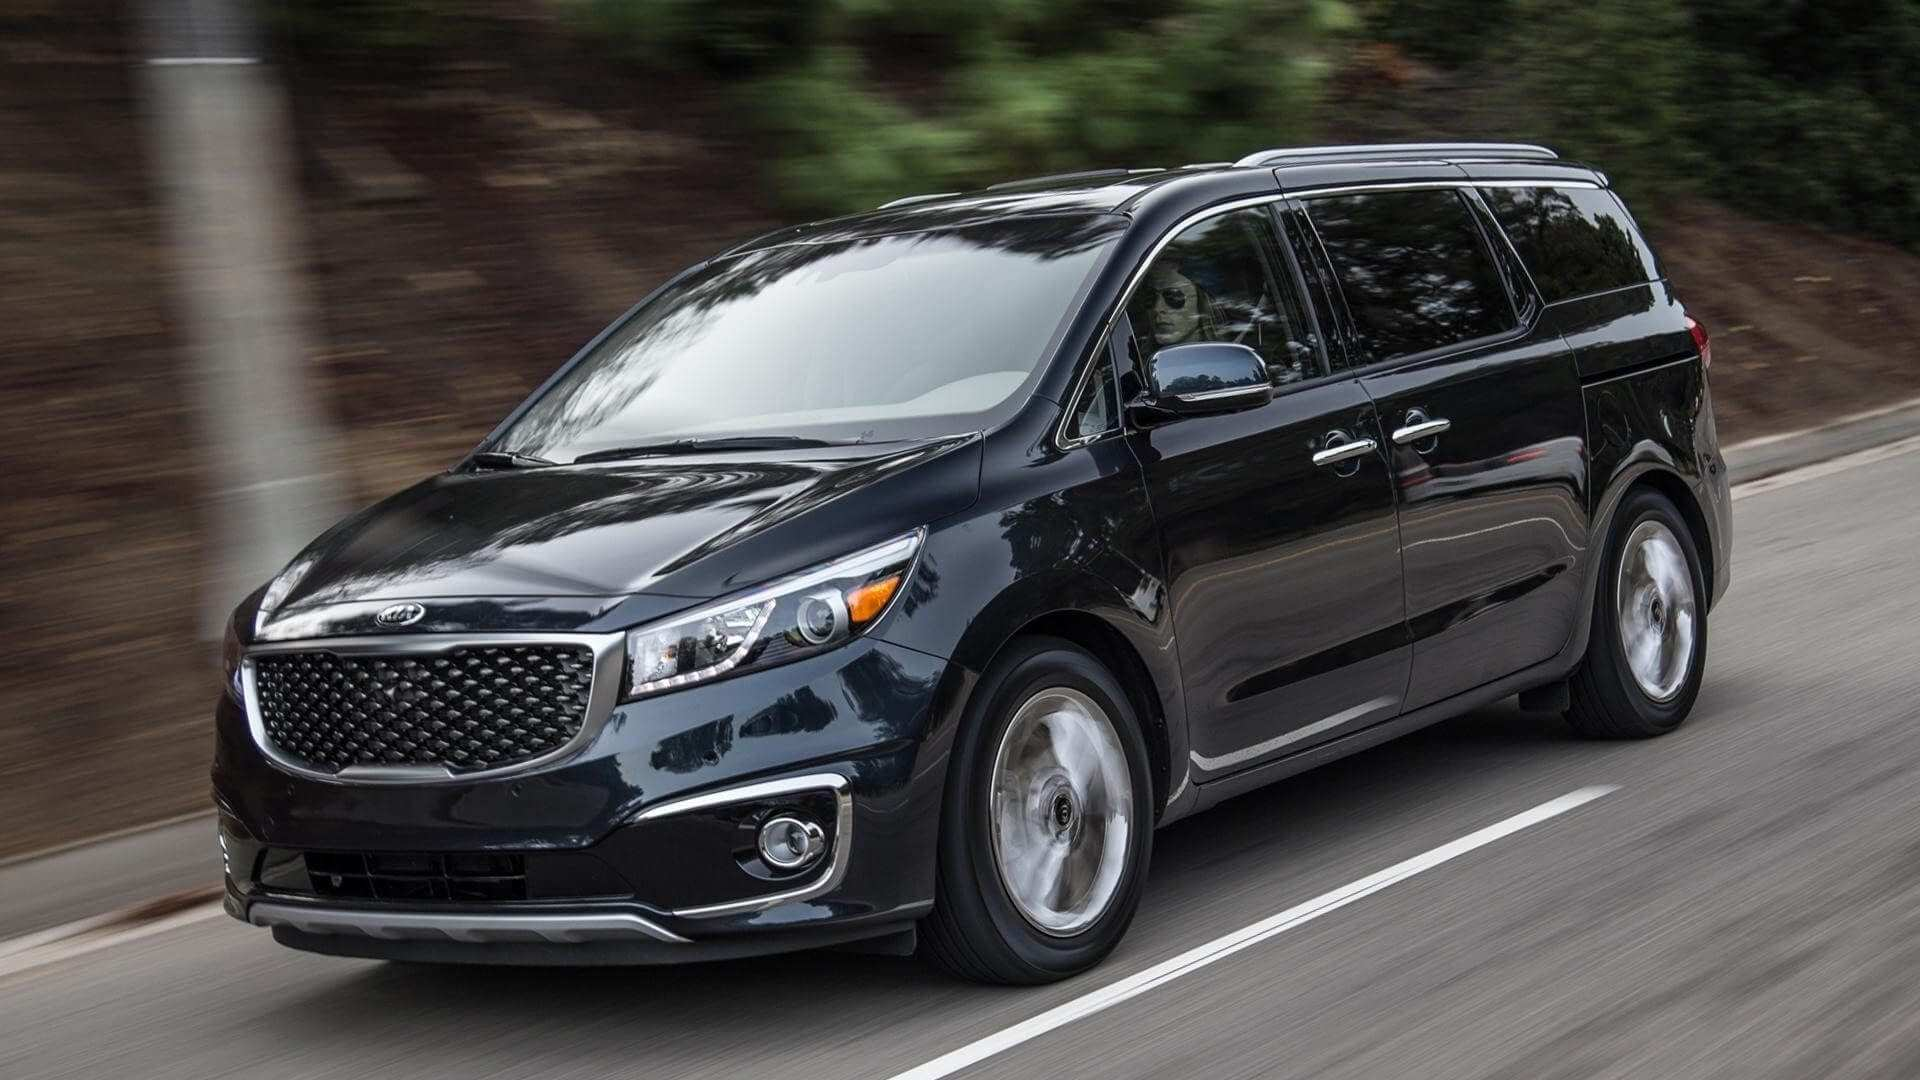 81 All New 2020 Kia Sedona Overview with 2020 Kia Sedona